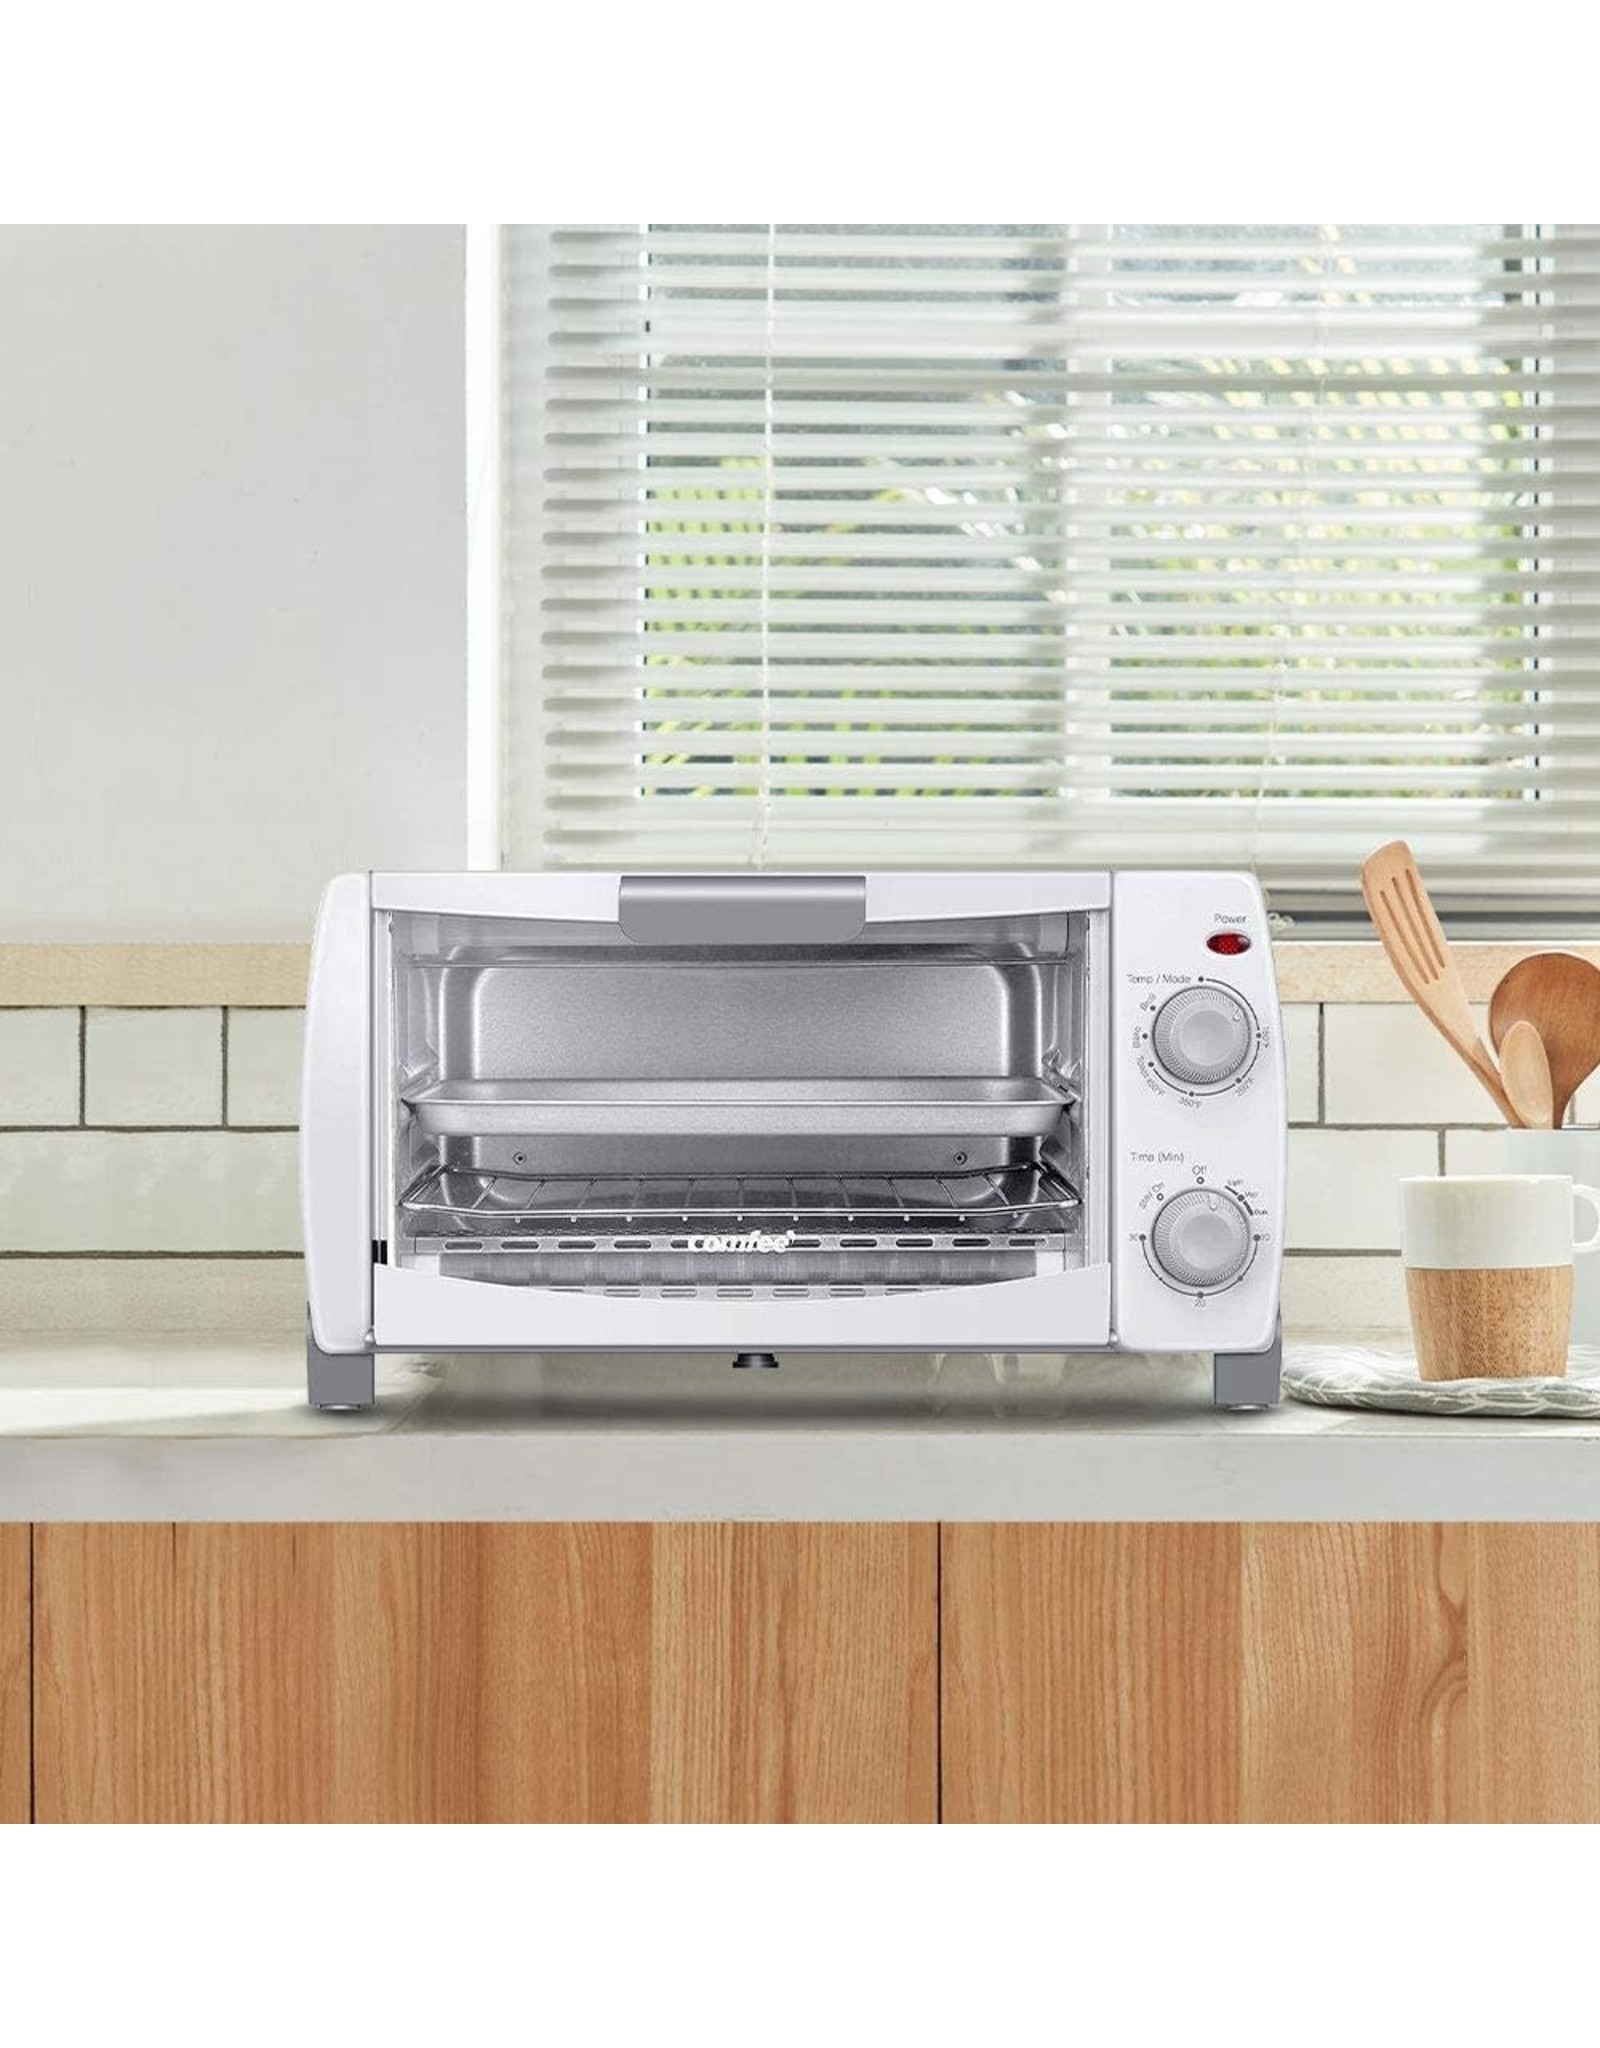 COMFEE' COMFEE' Toaster Oven Countertop, 4-Slice, Compact Size, Easy to Control with Timer-Bake-Broil-Toast Setting, 1000W, White (CFO-BB102)